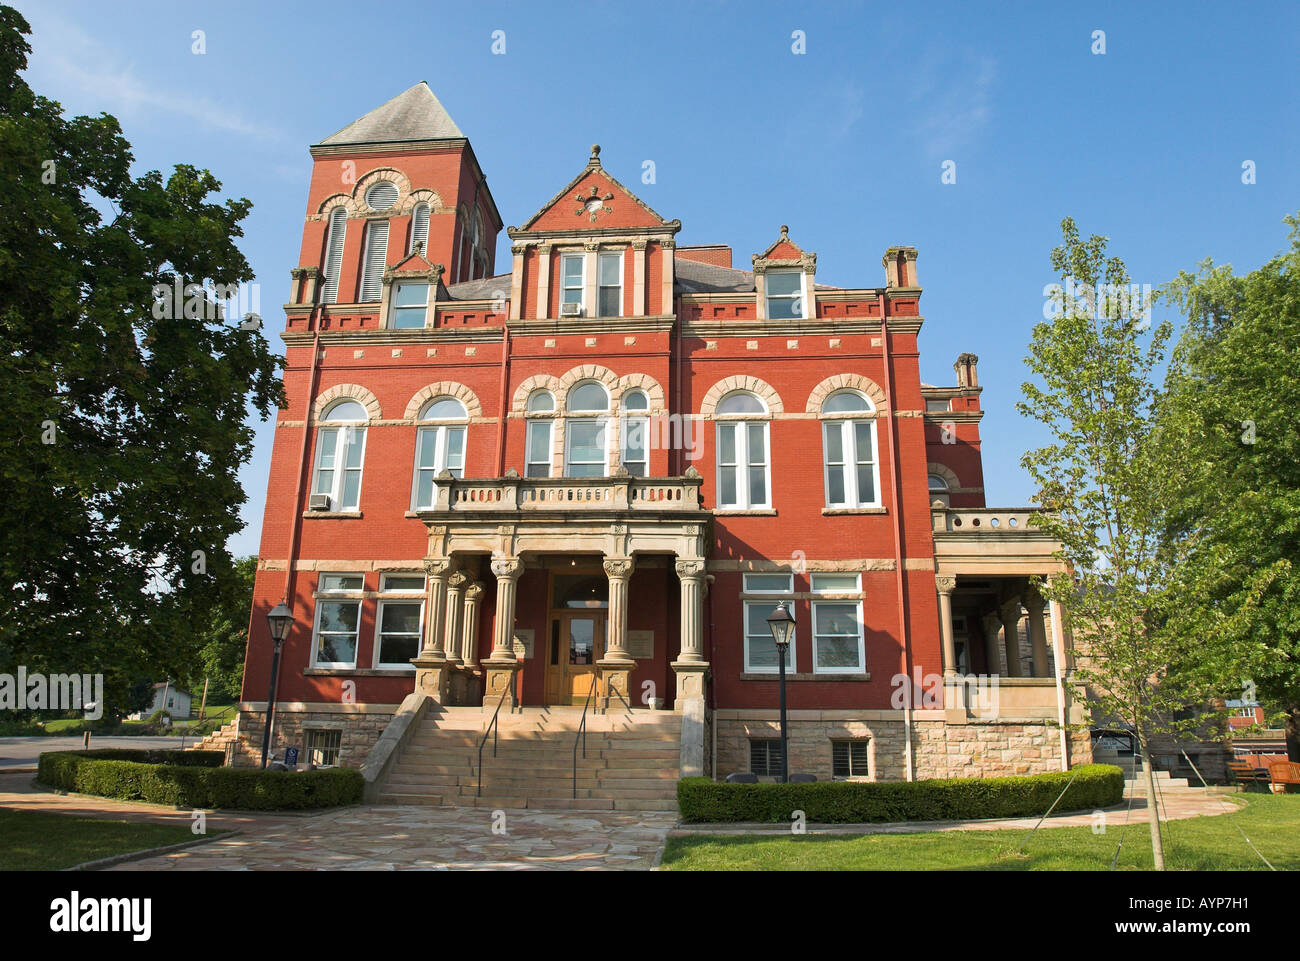 Courthouse in fayetteville west virginia usa stock image